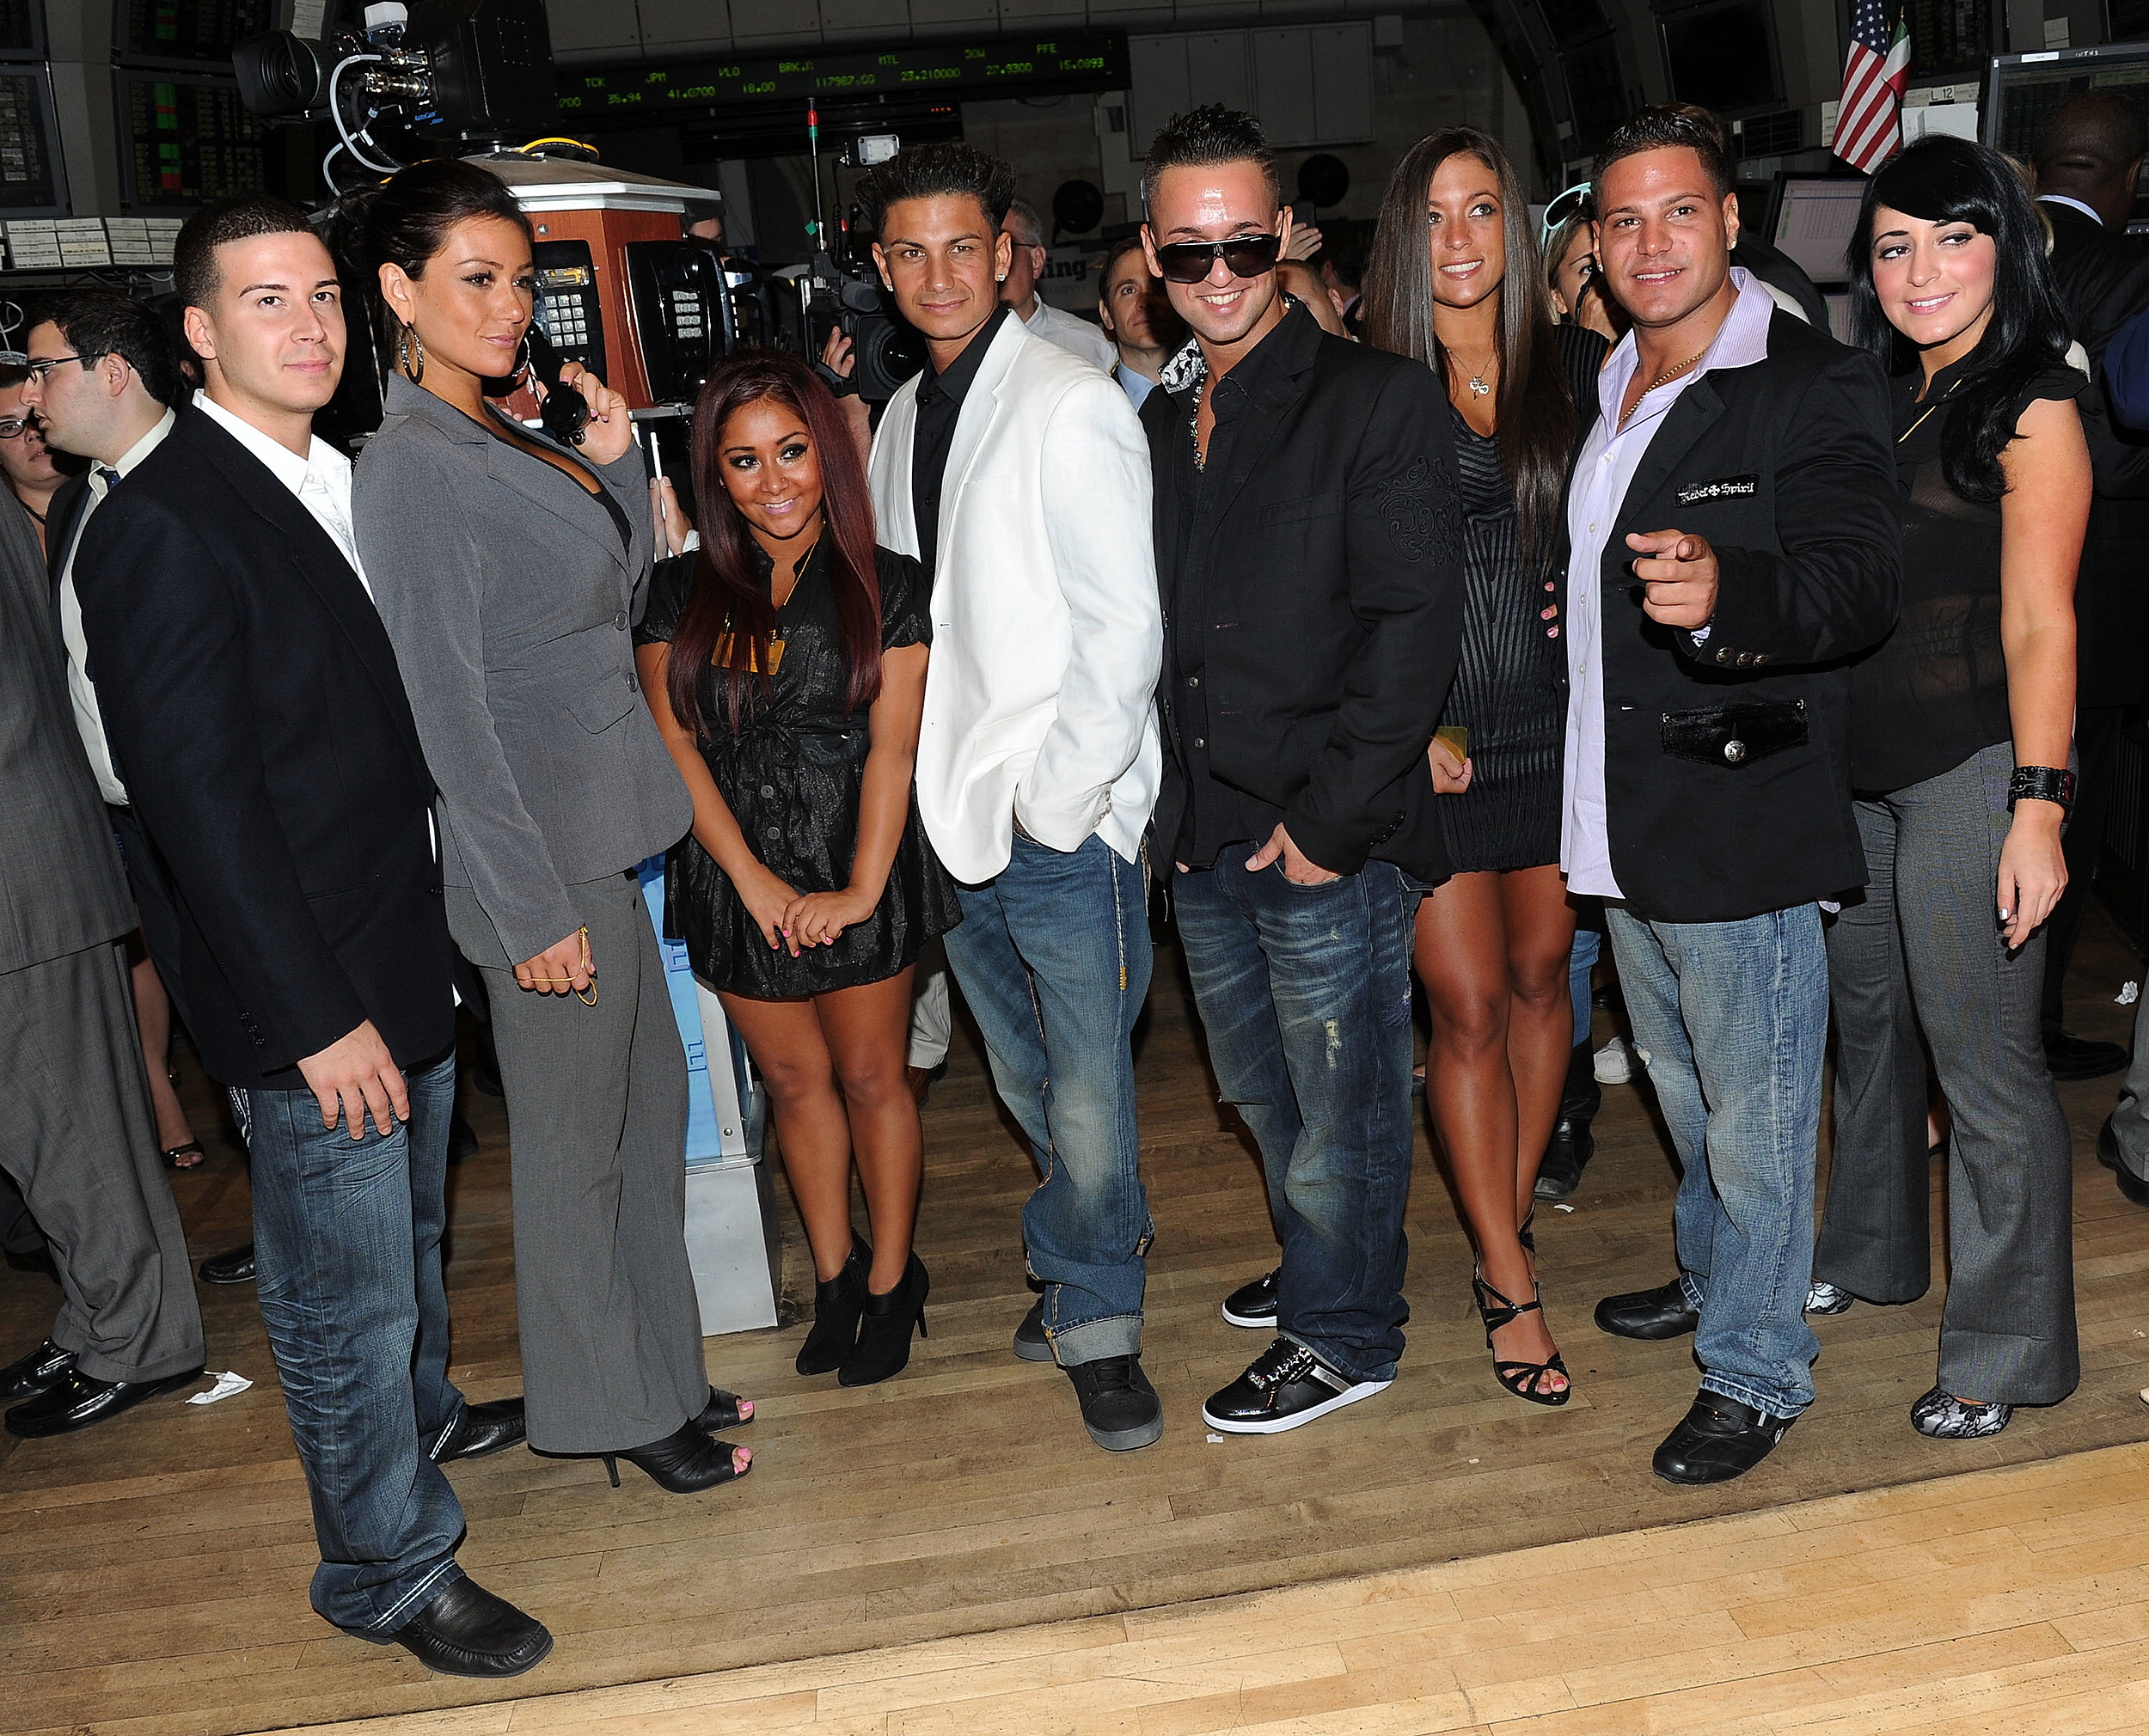 """Cast Of """"Jersey Shore"""" Rings The NYSE Opening Bell - July 27, 2010"""